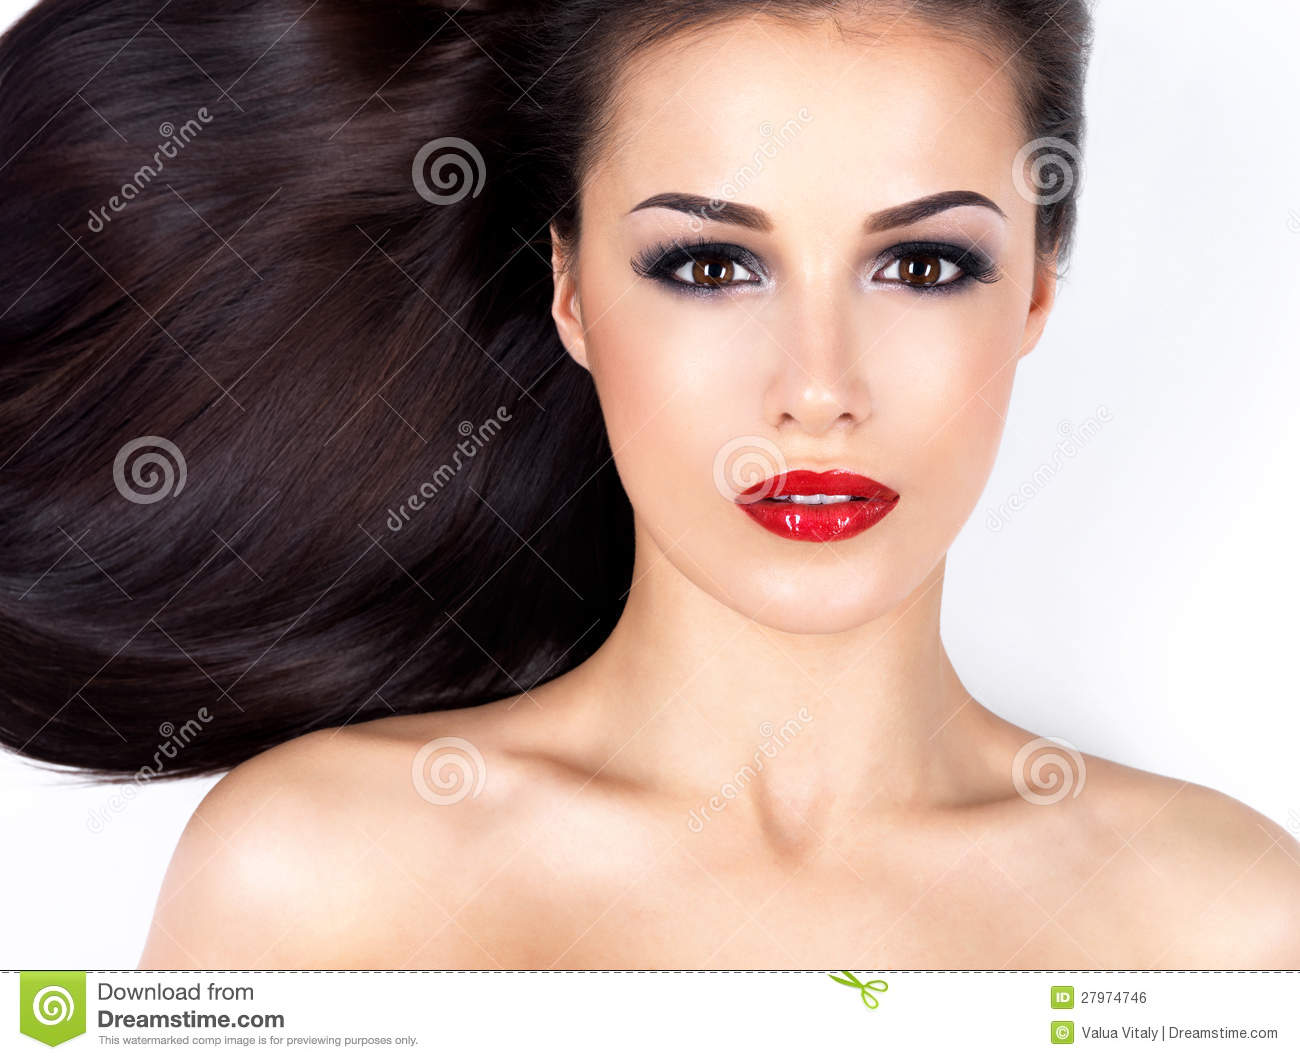 Beautiful woman with long straight brown hair